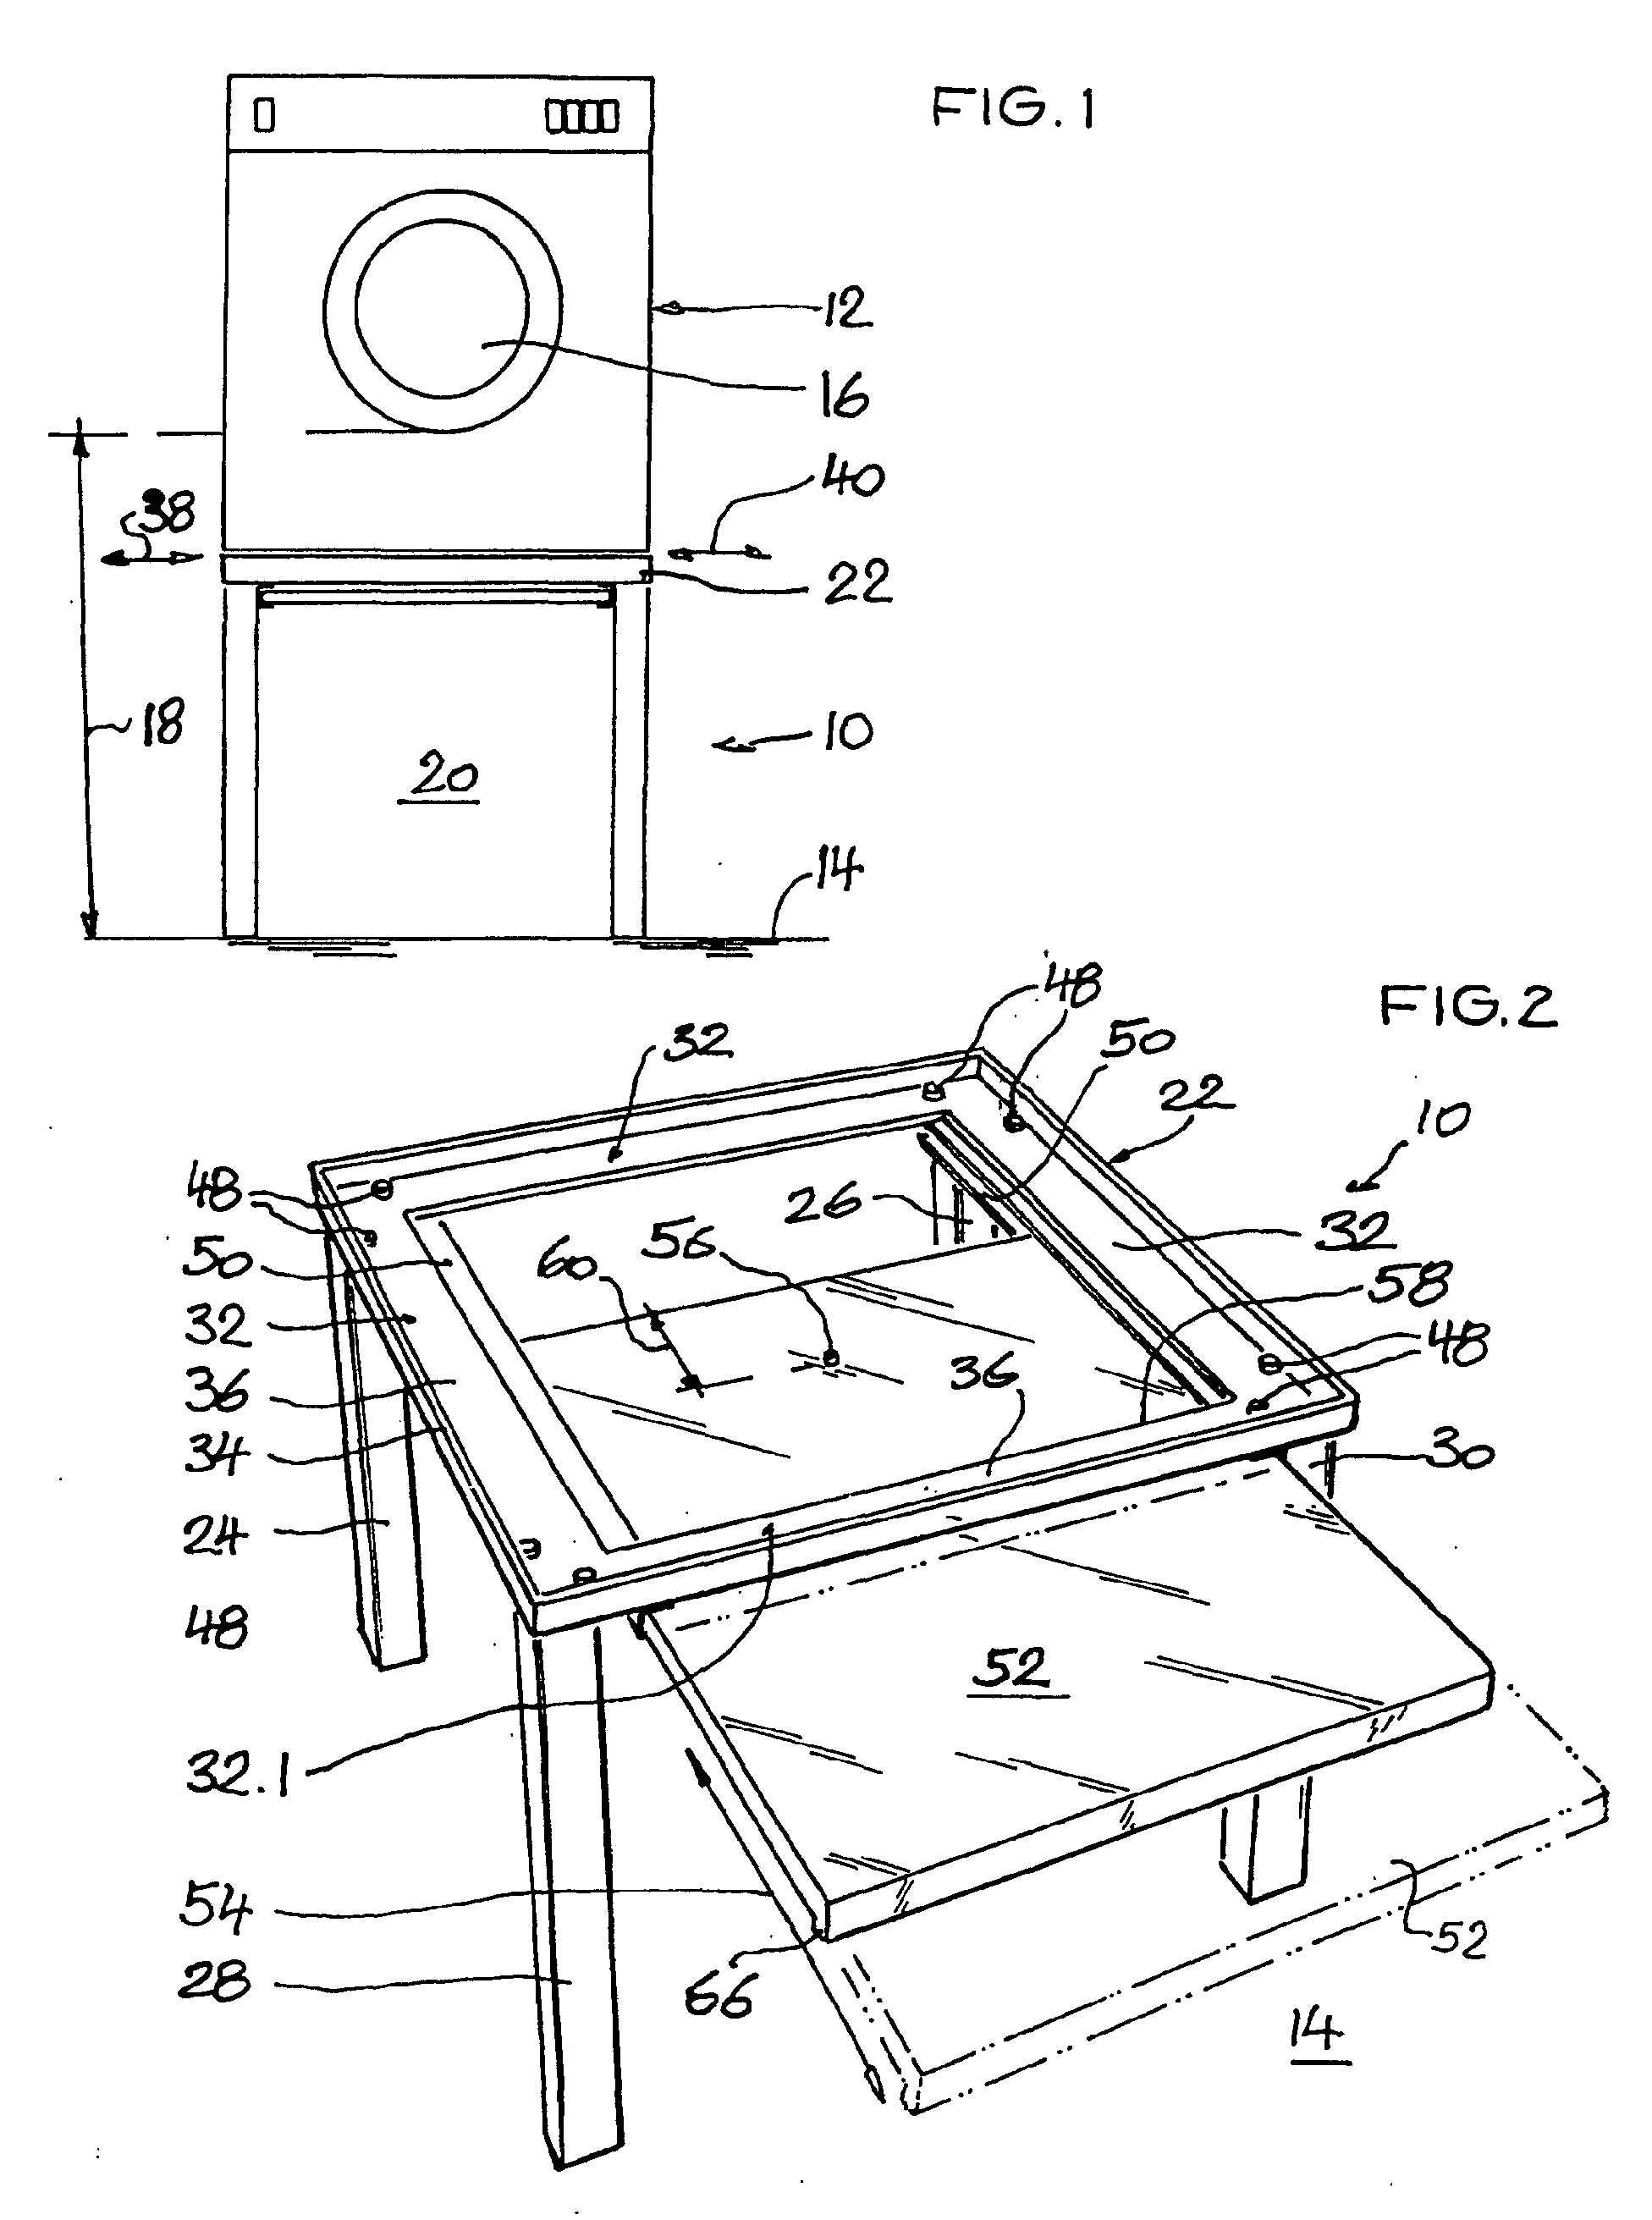 patent ep1227182a2 untergestell f r eine waschmaschine google patents. Black Bedroom Furniture Sets. Home Design Ideas